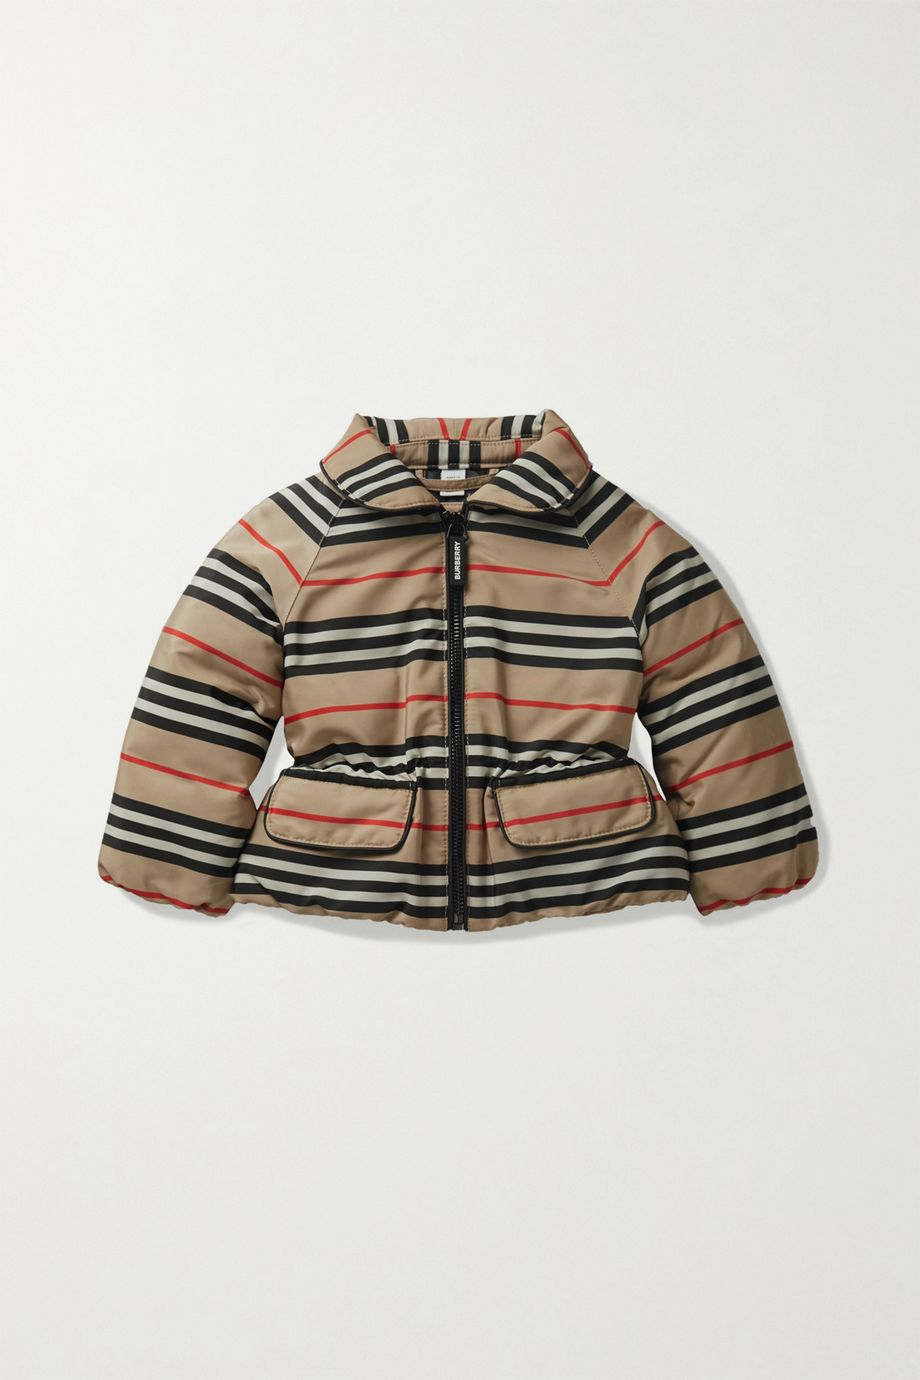 Burberry Kids Months 6 - 24 printed shell down jacket